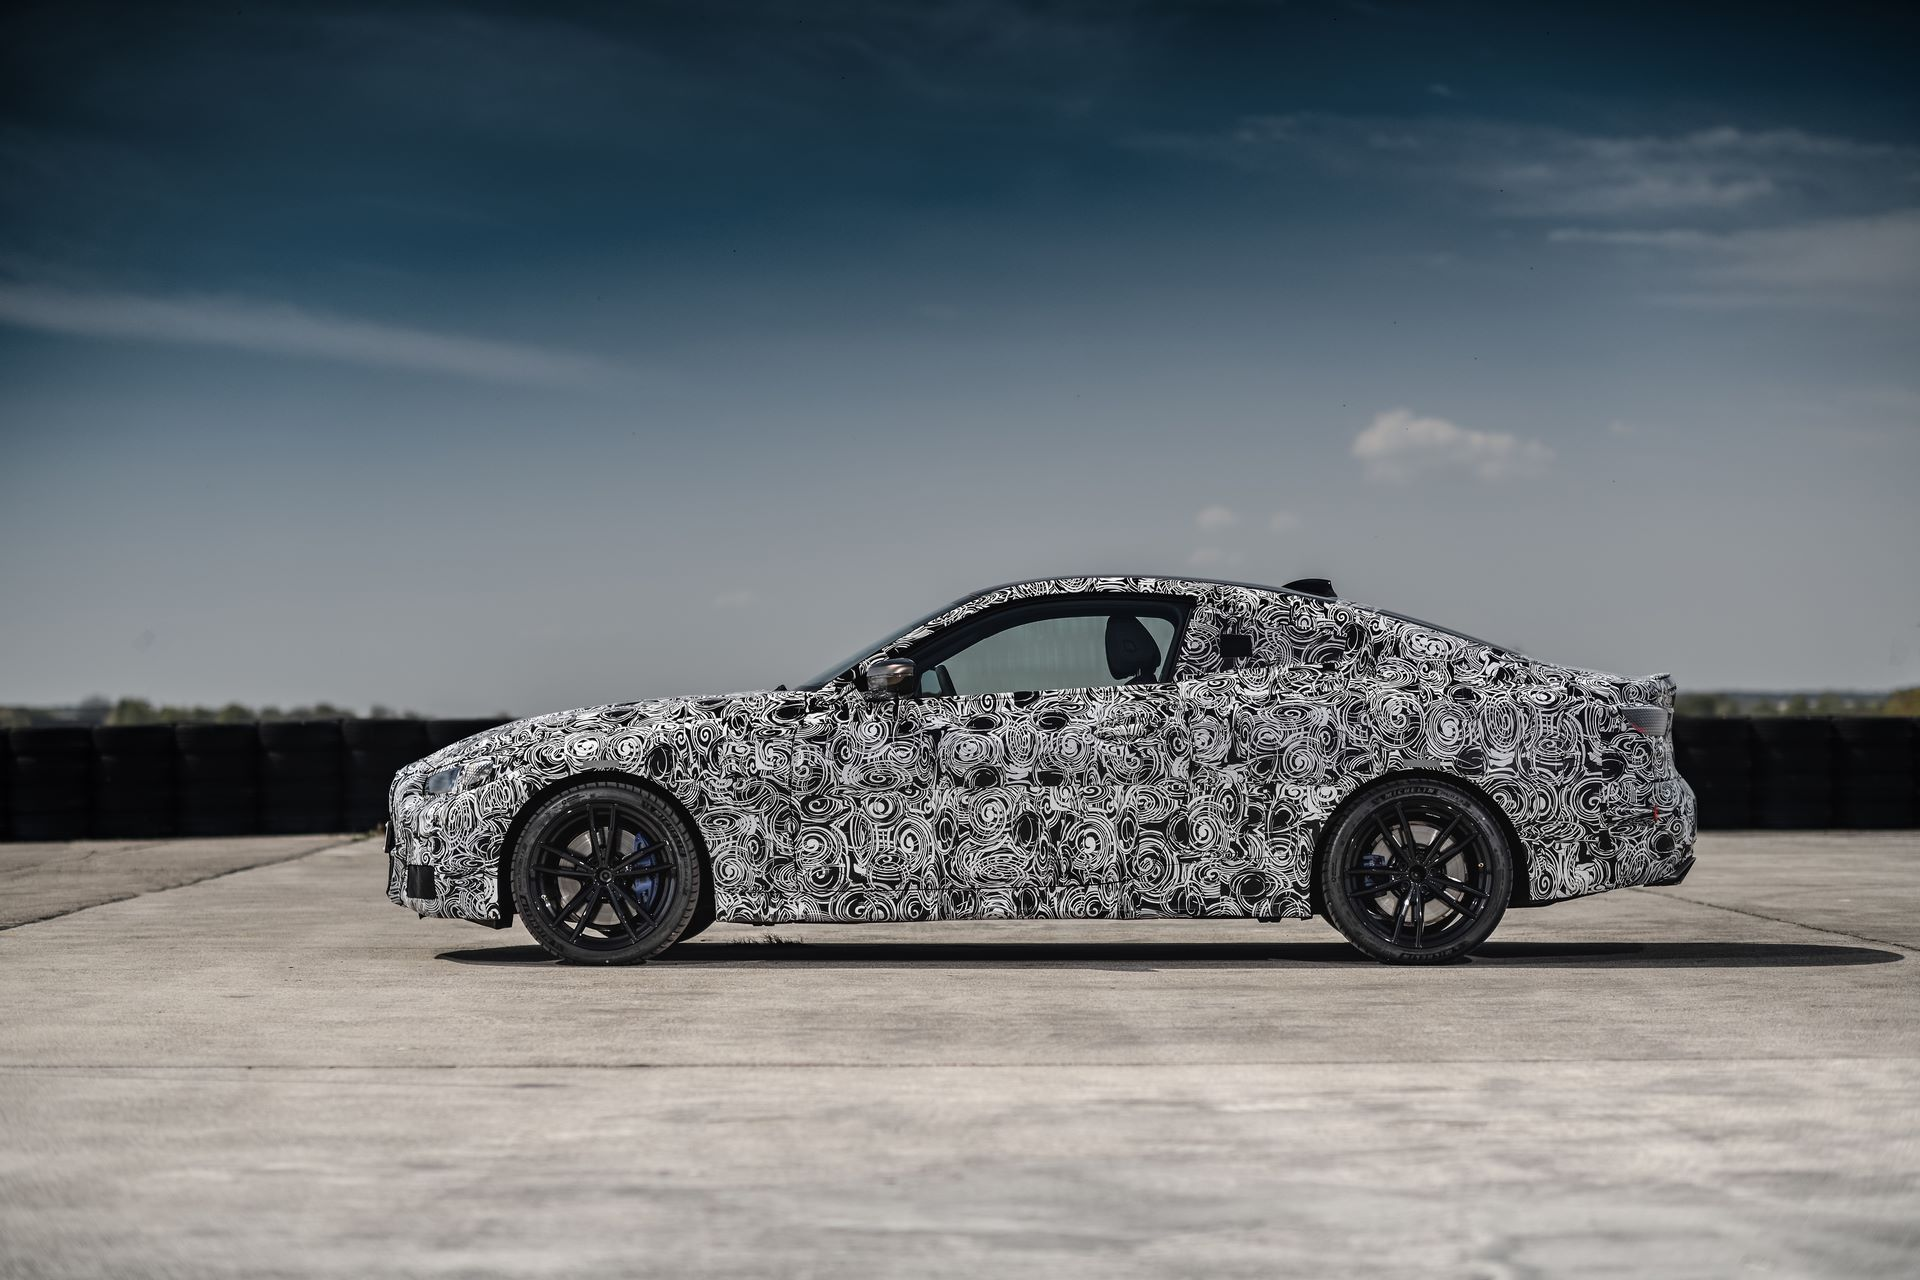 BMW-4-Series-M440i-camouflaged-37